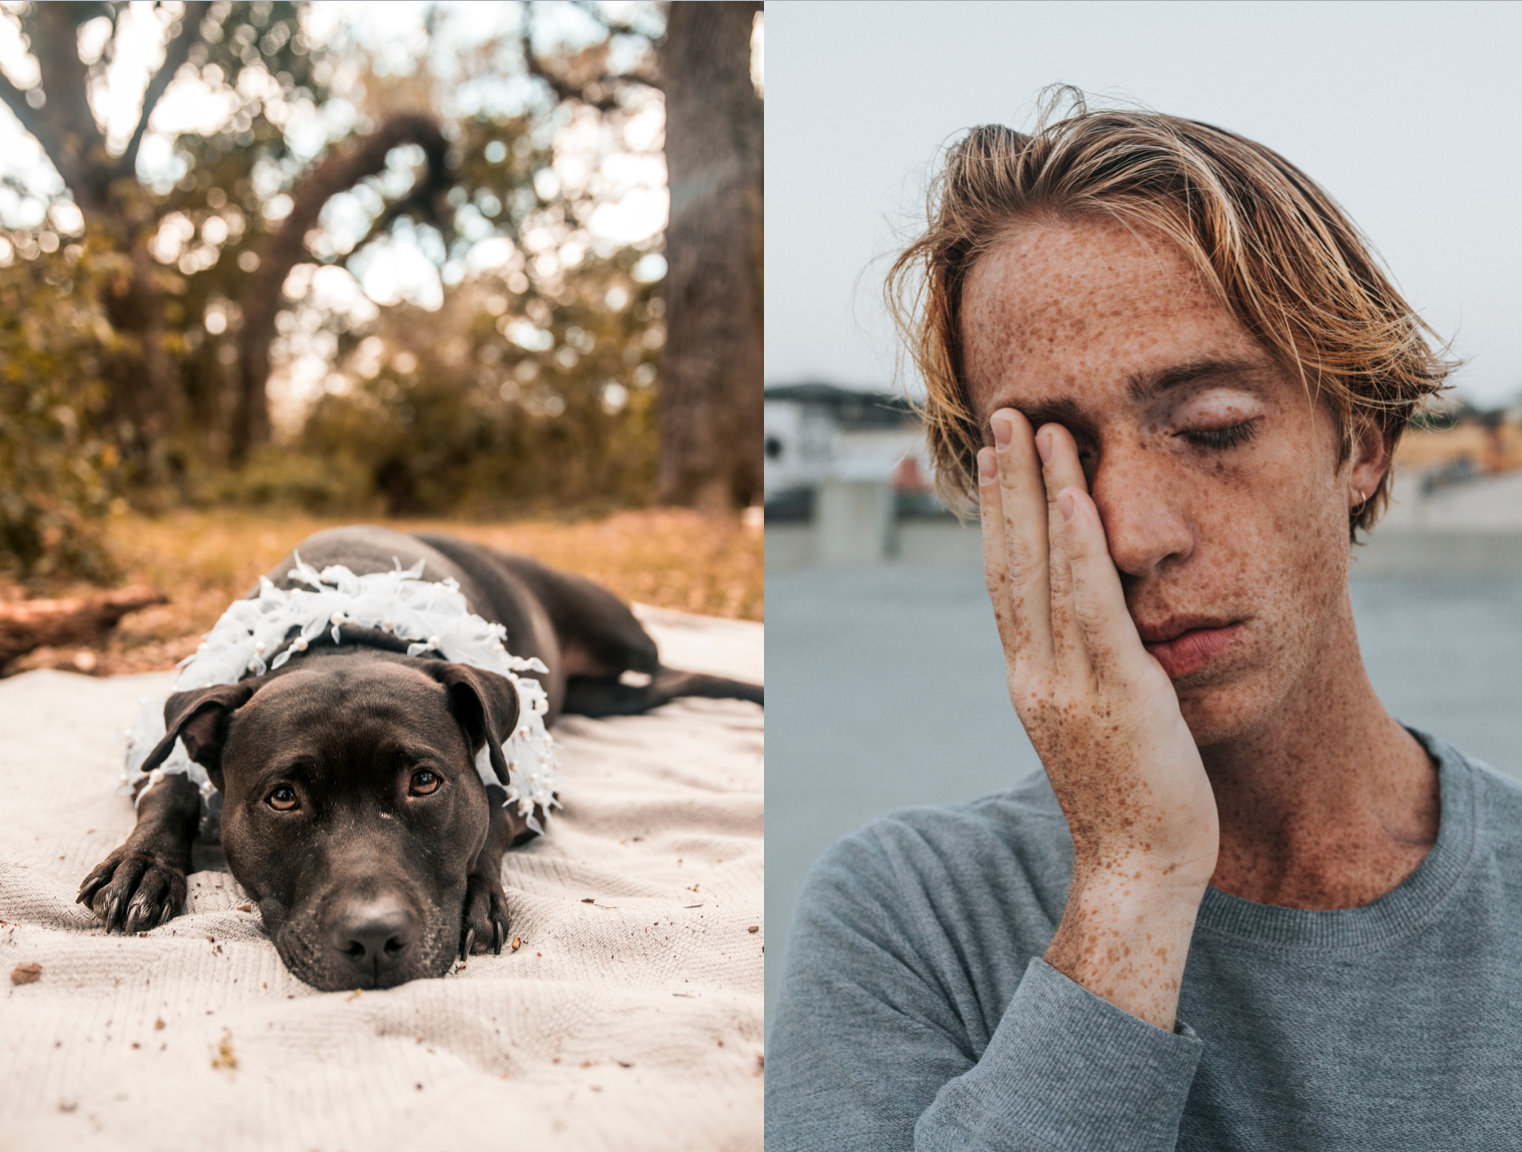 Left: Dog on the beach; image by Amaury Gutierrez, via Unsplash.com. Right: Man covering face; image by Nathan Dumlao, via Unsplash.com.